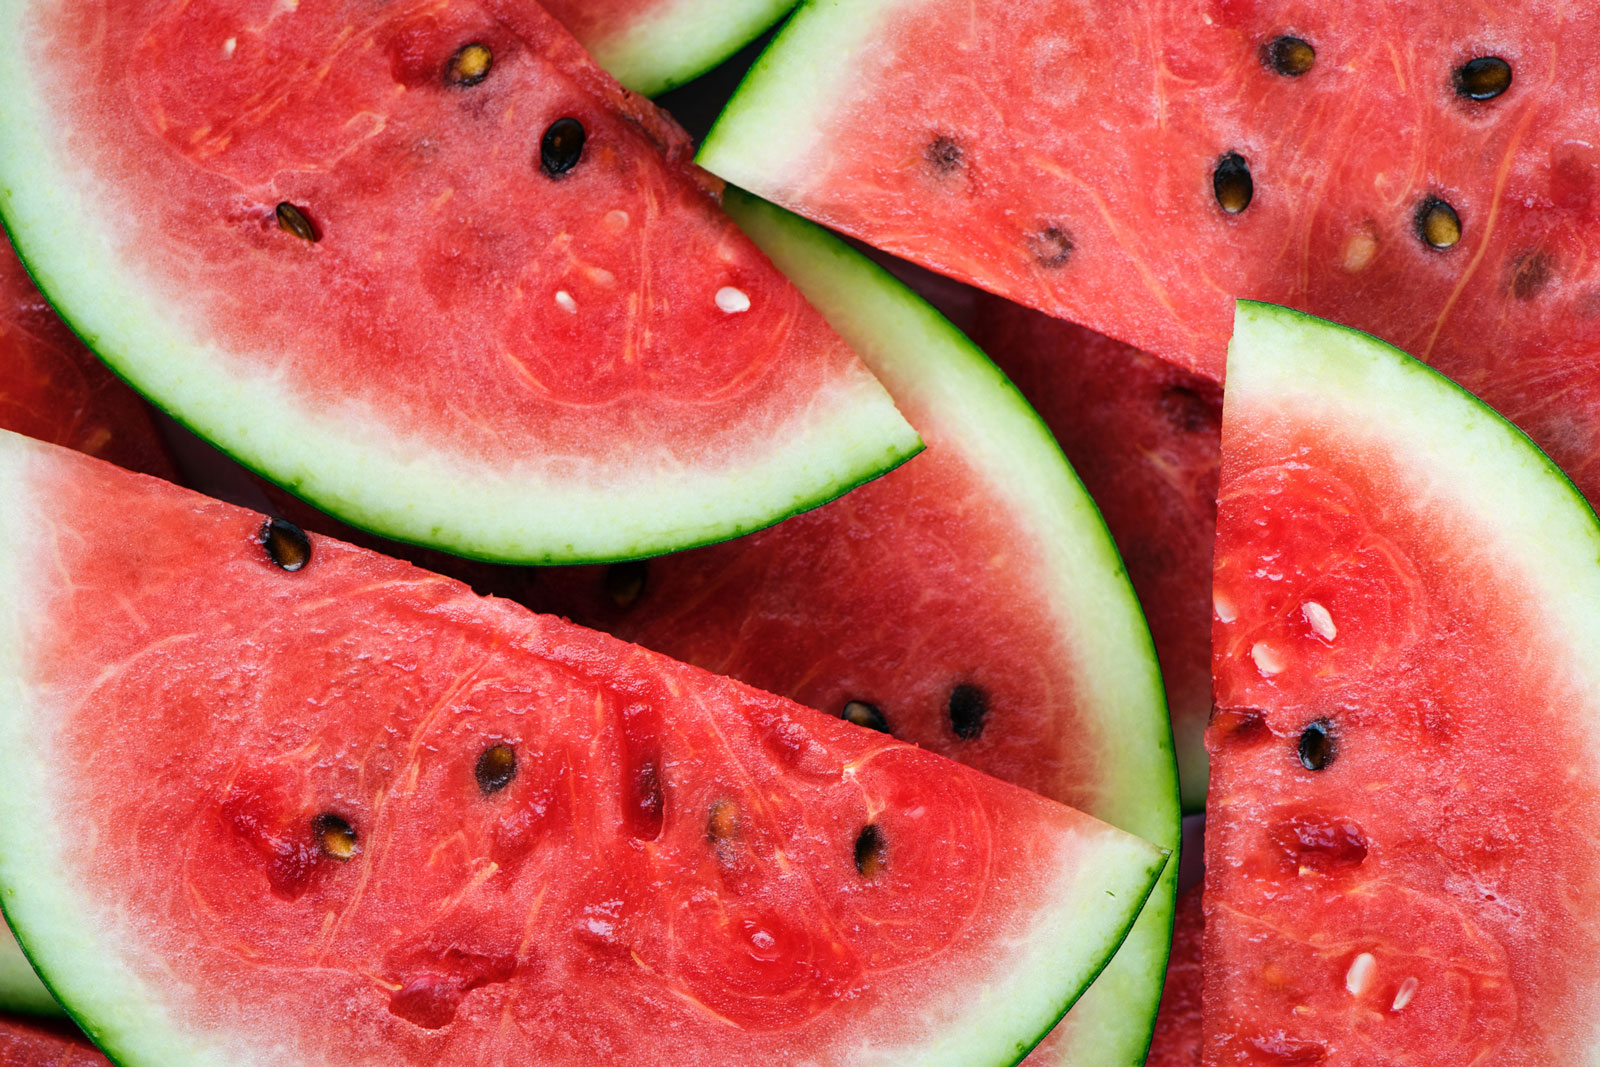 Watermelon | The Best Fruits and Vegetables for Juicing With 3 Ingredients